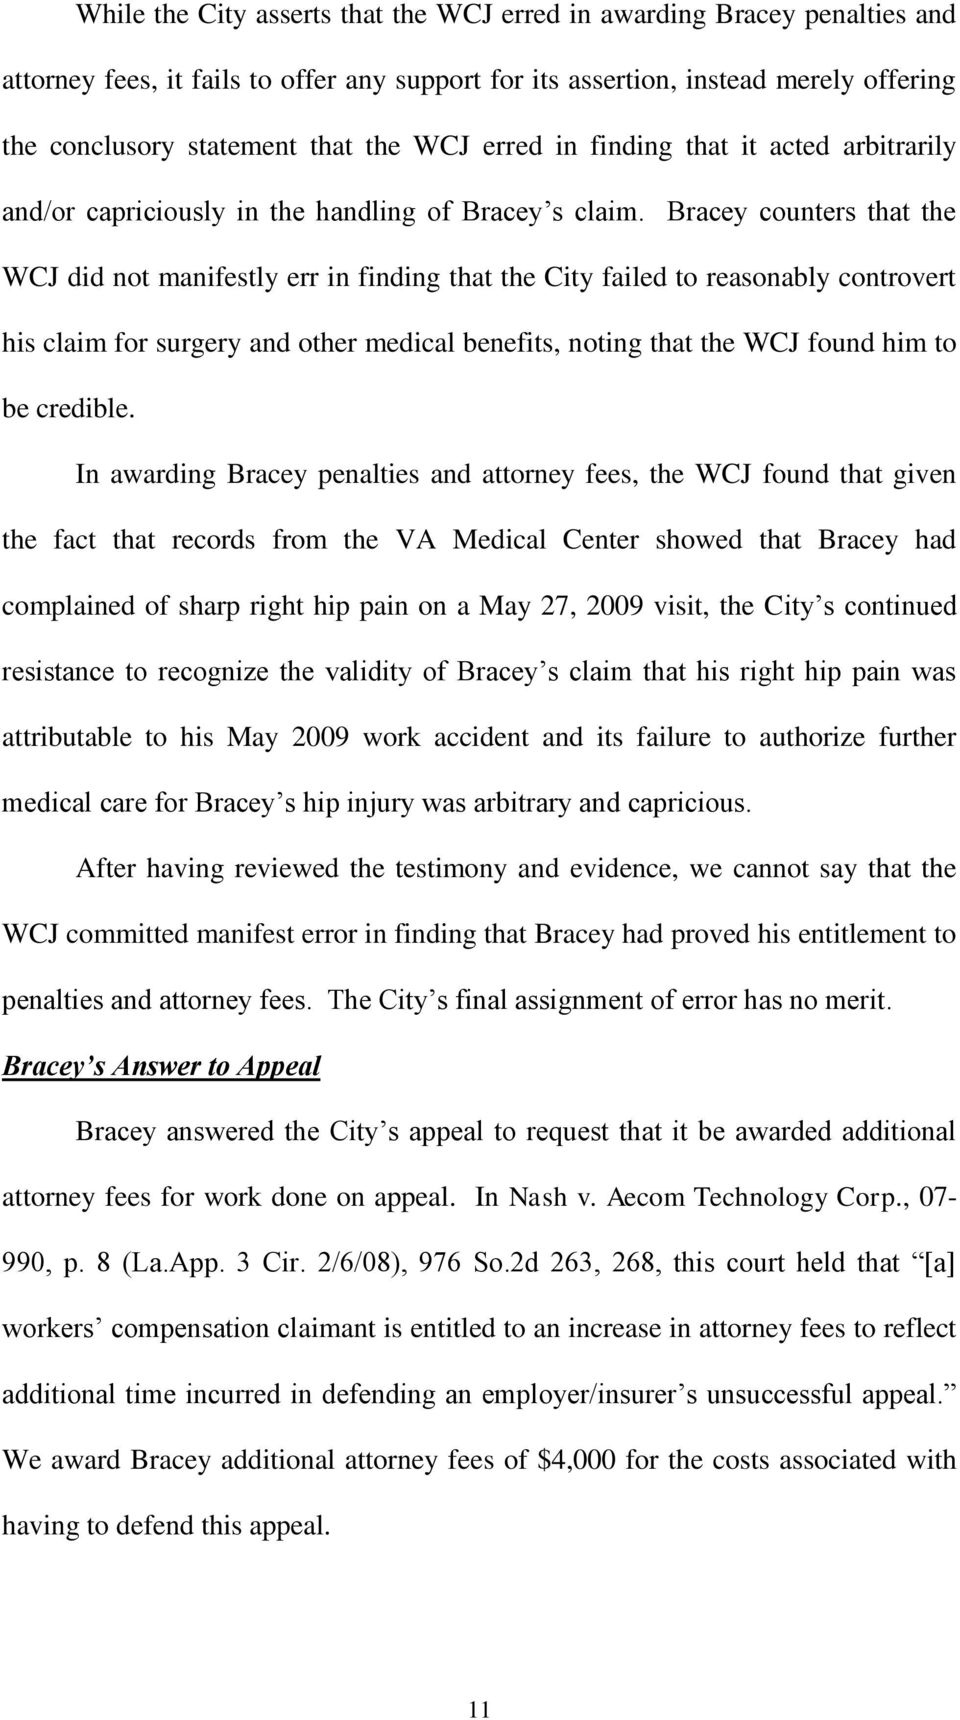 Bracey counters that the WCJ did not manifestly err in finding that the City failed to reasonably controvert his claim for surgery and other medical benefits, noting that the WCJ found him to be